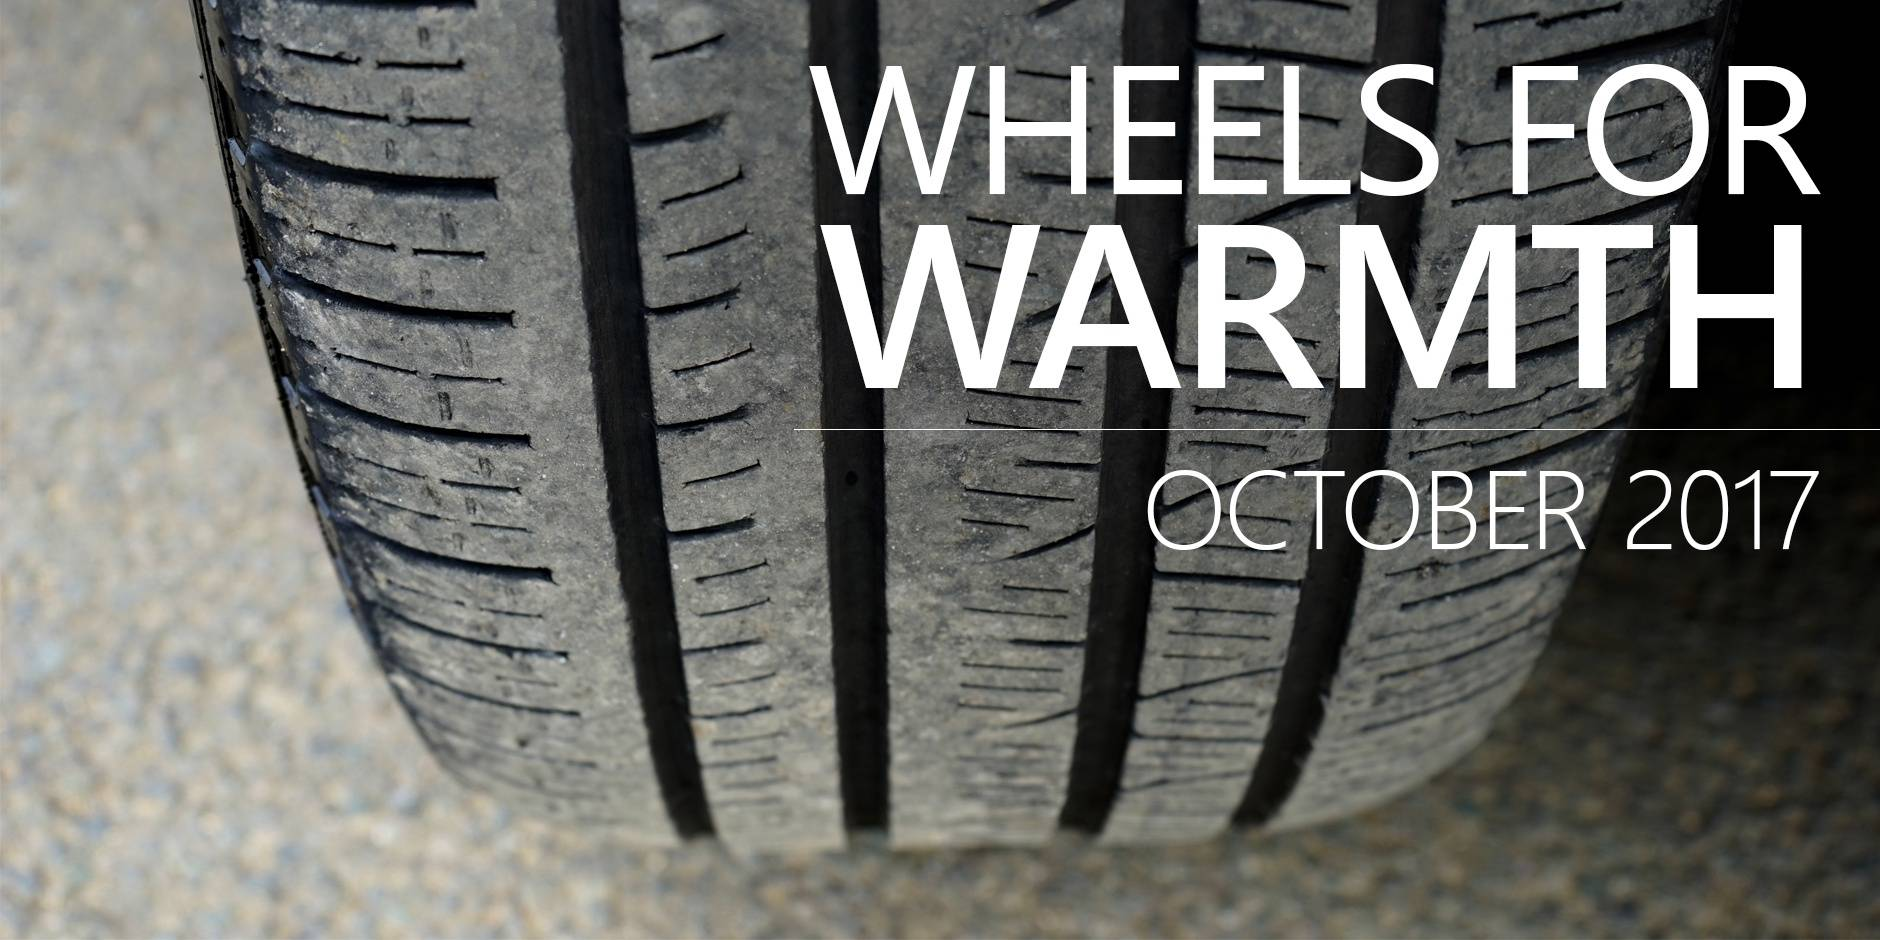 Donate Your Tires in October